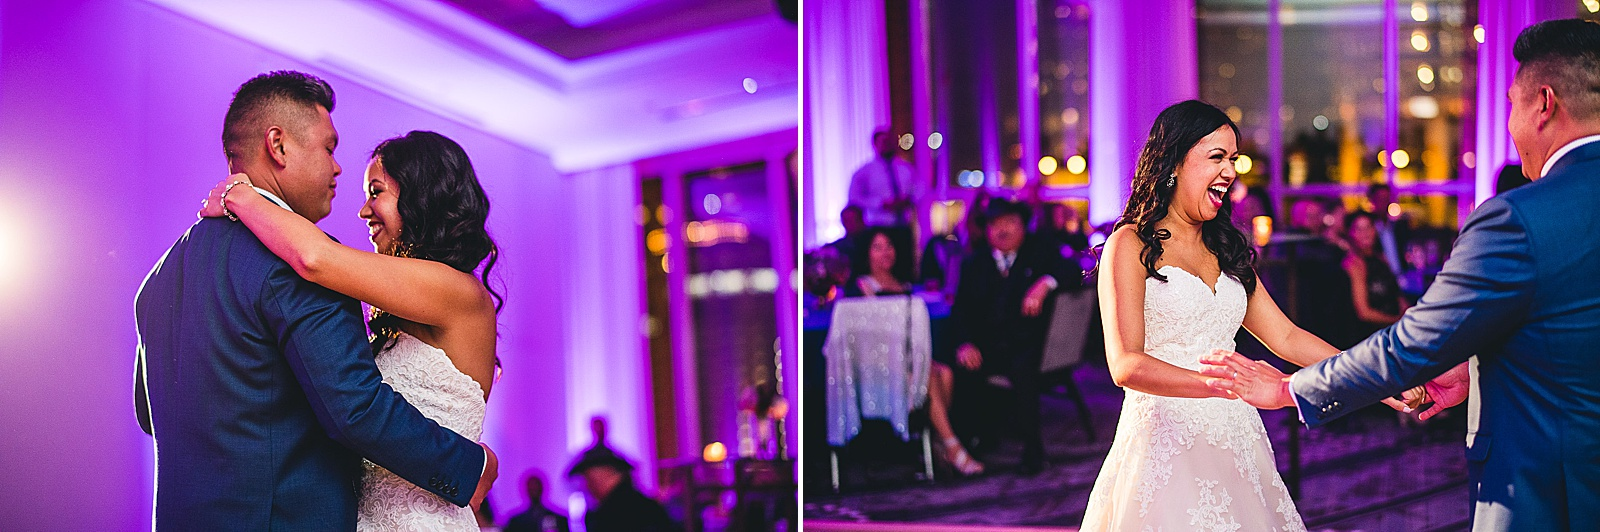 54 first dance as married couple - LondonHouse Wedding Photos // Mari + Kevin